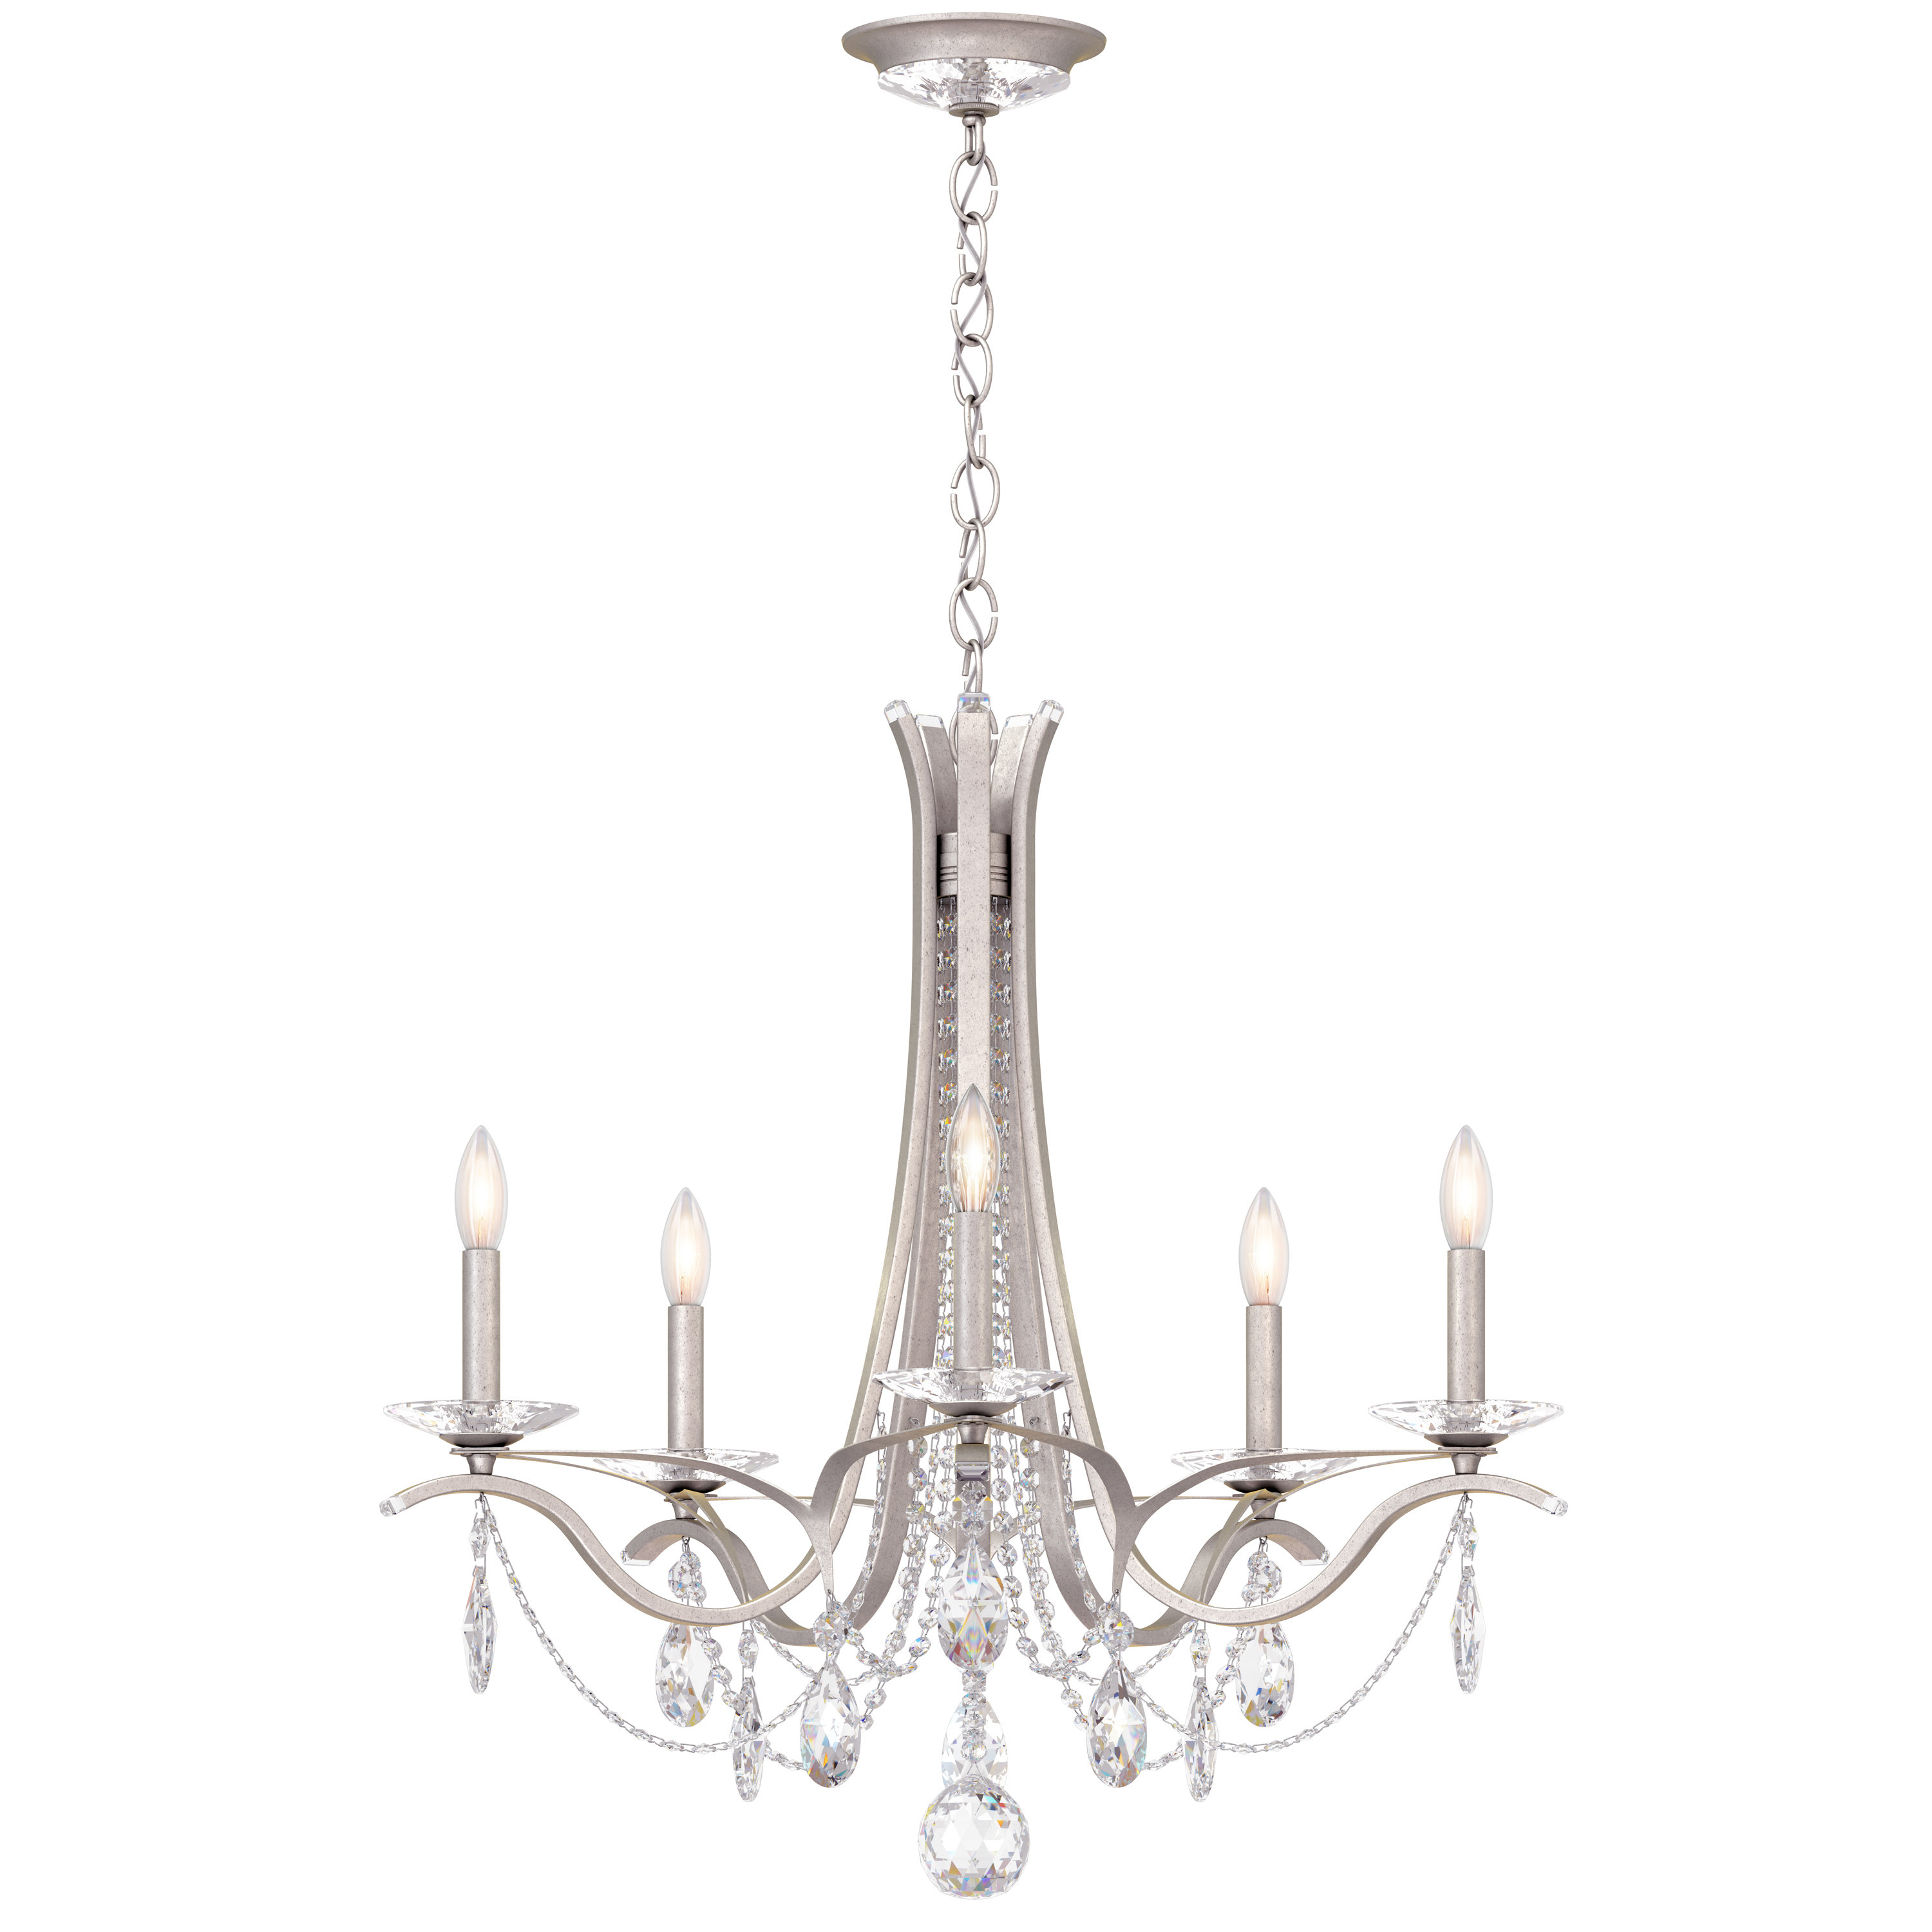 Vesca 5 Light Chandelier Intended For 2019 Berger 5 Light Candle Style Chandeliers (View 18 of 20)